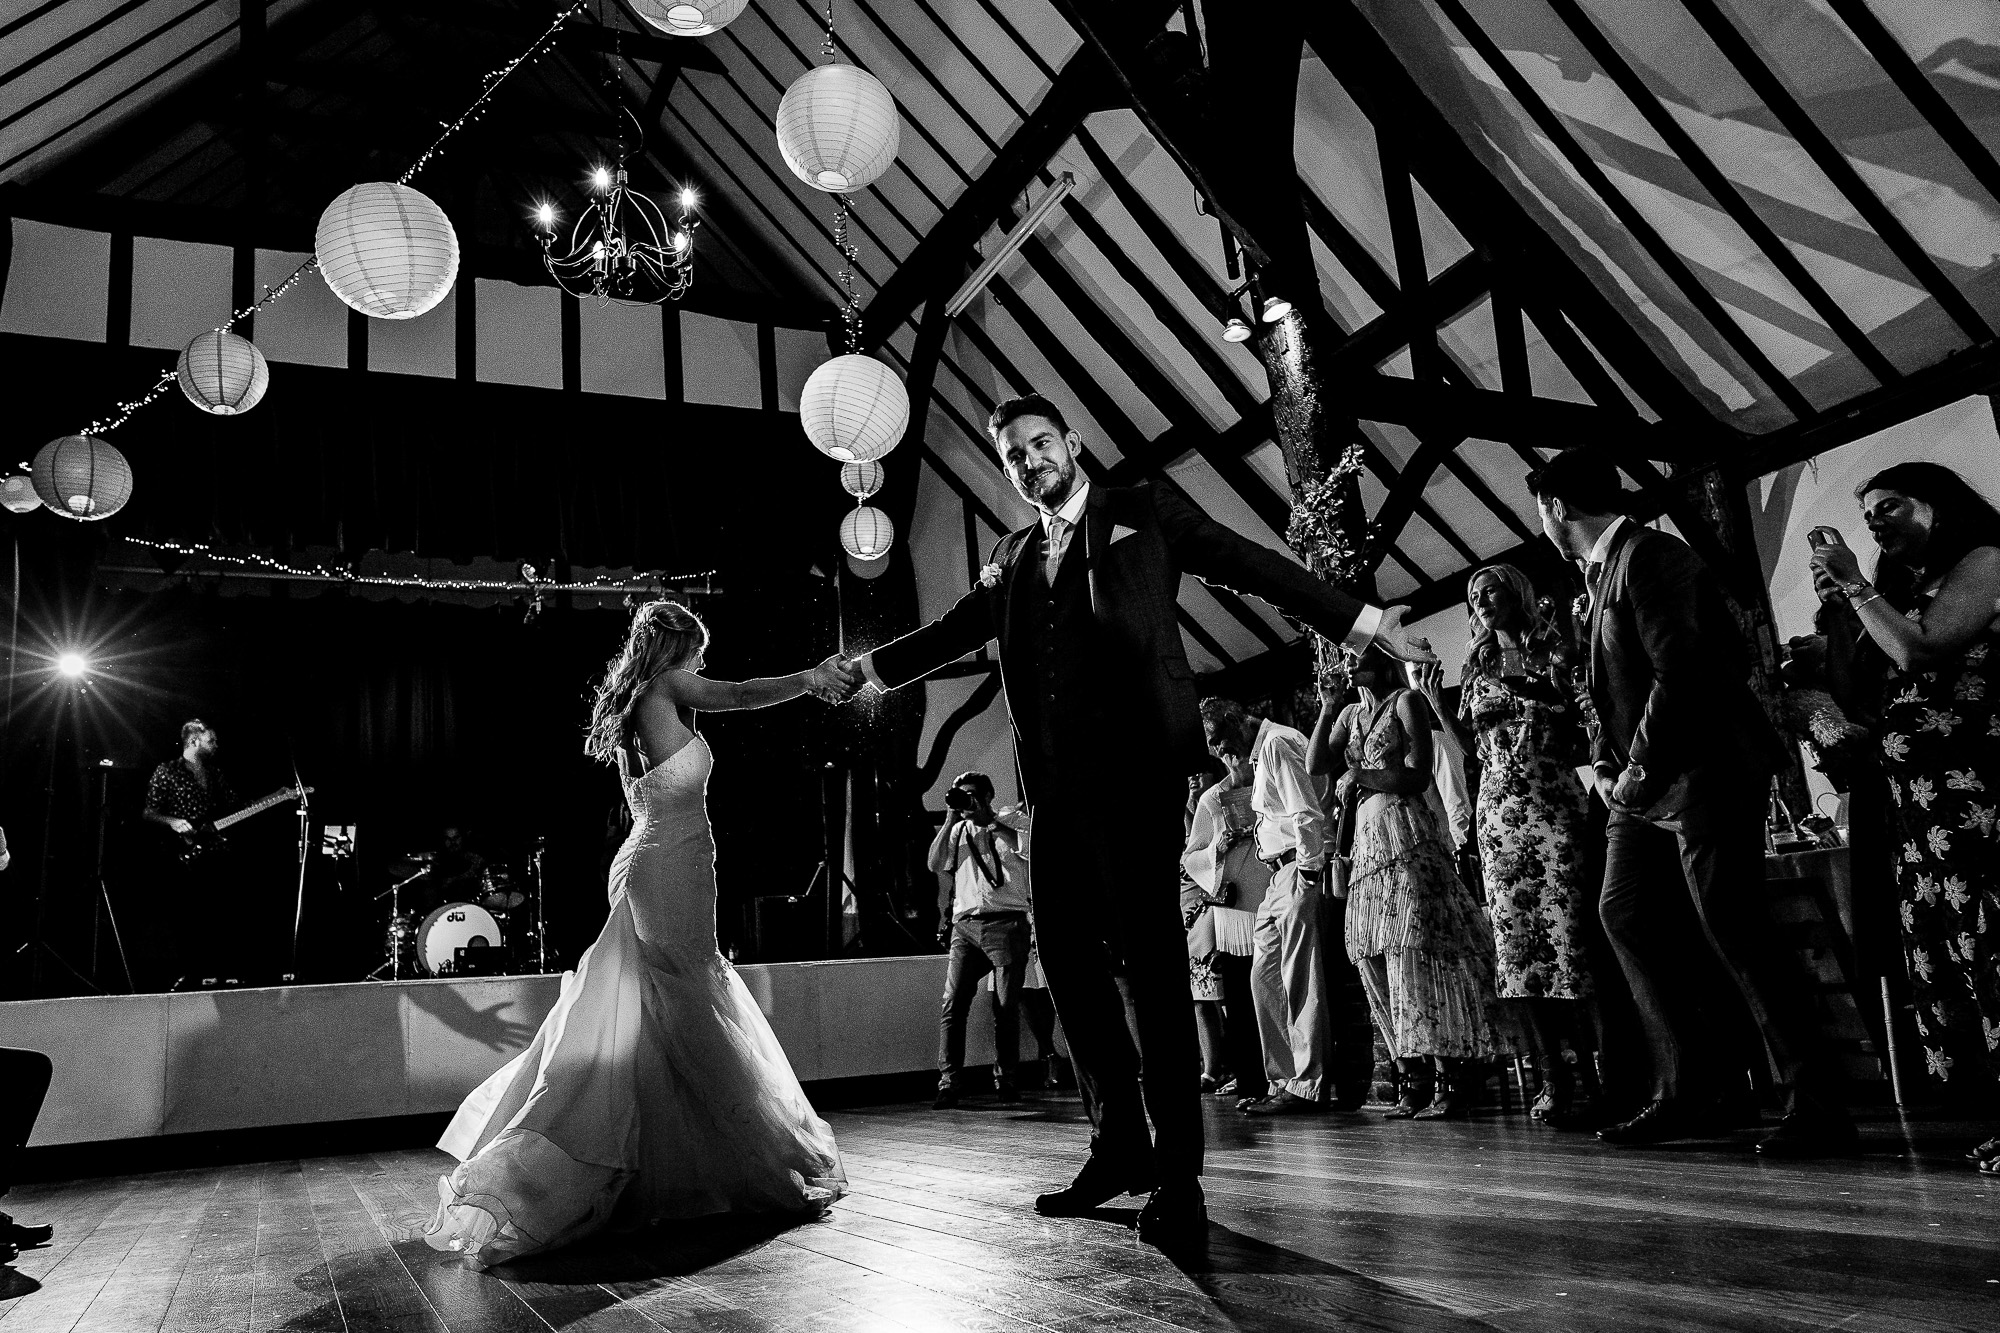 Chilham village weddings